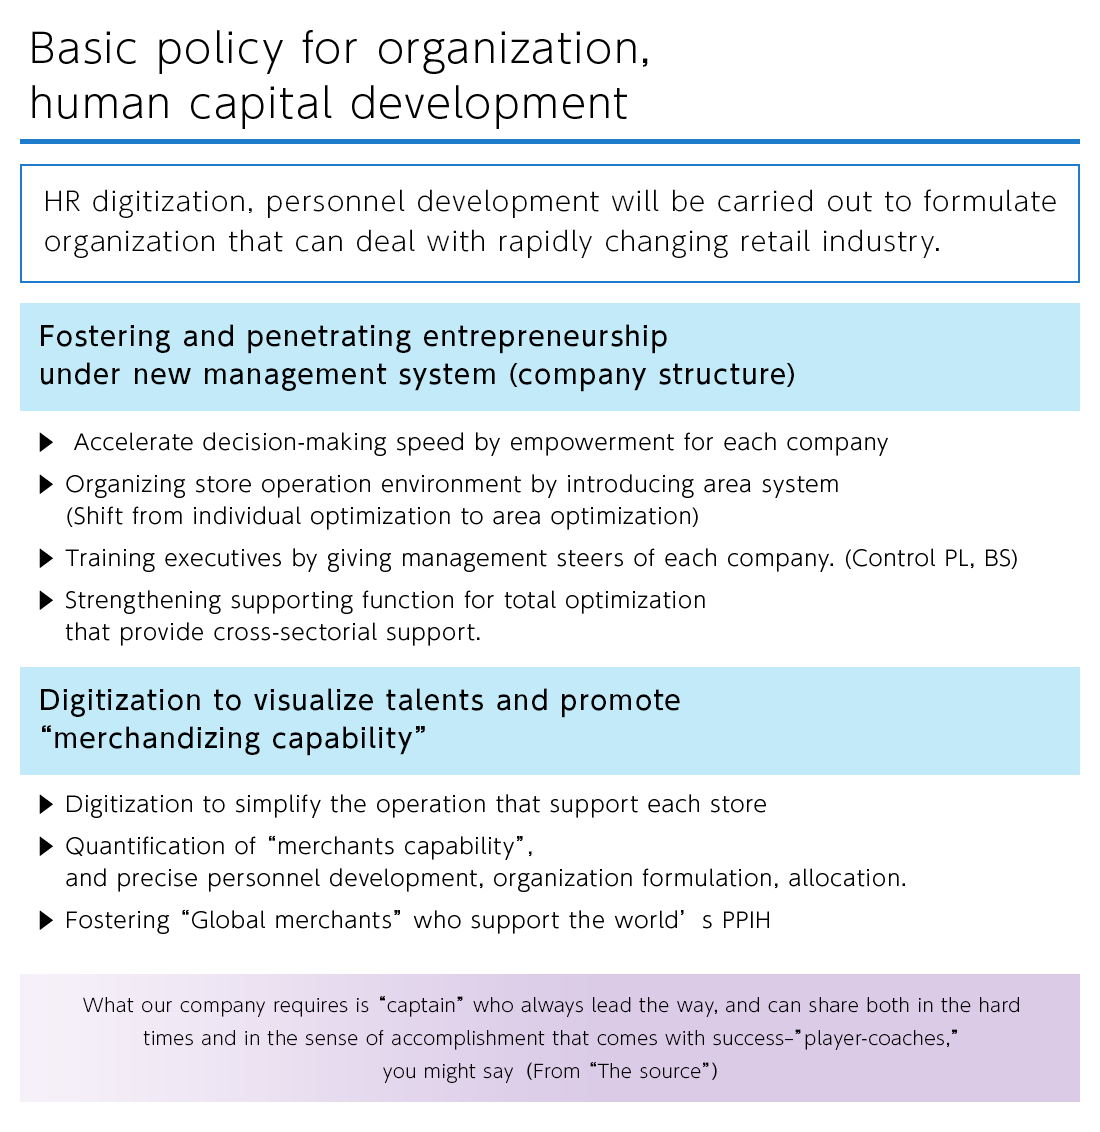 Basic policy for organization, human capital development